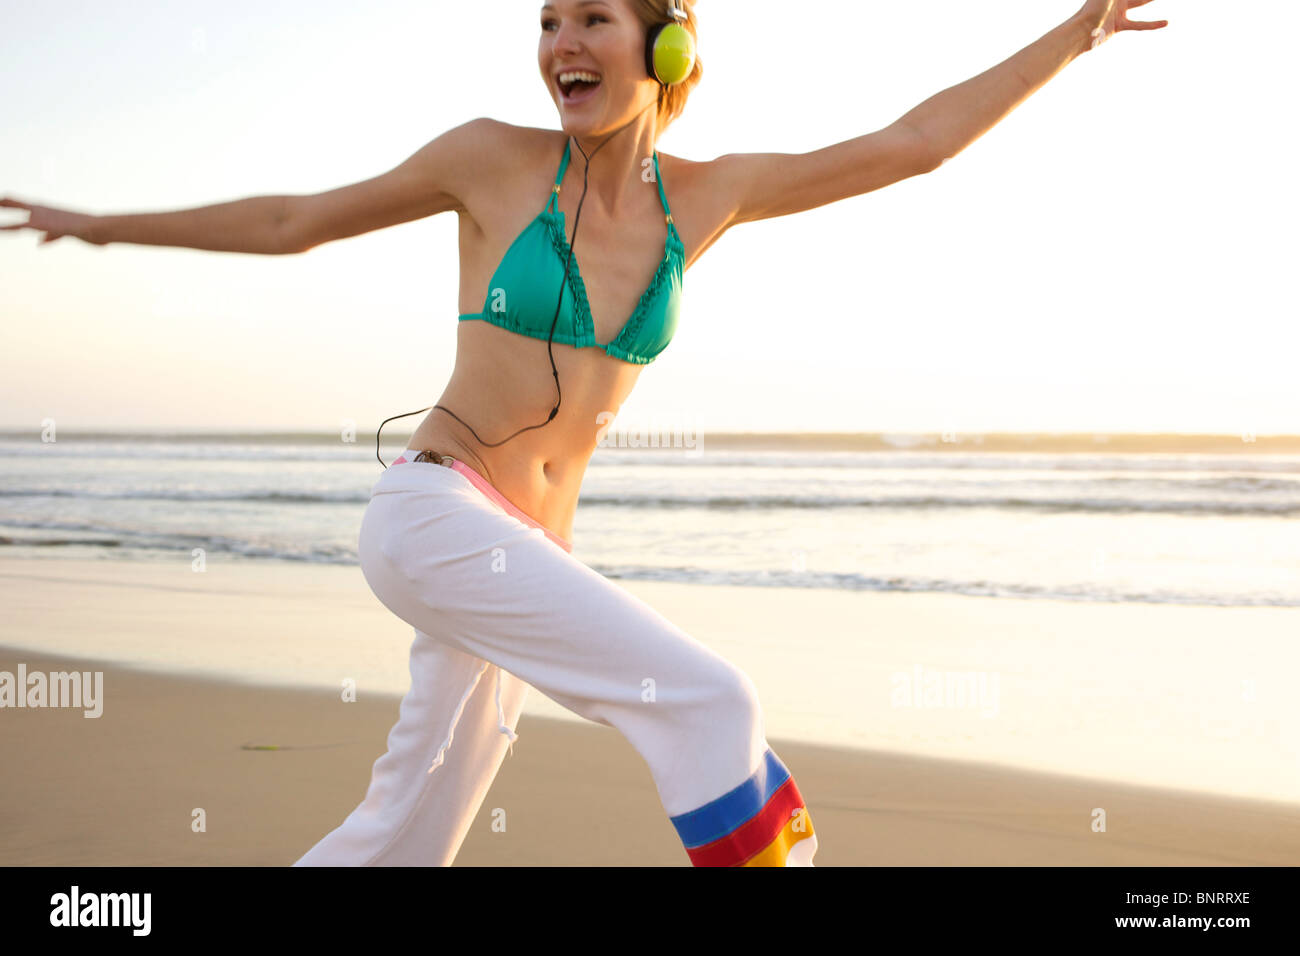 Young female wearing a headset jumps and smiles at the beach. - Stock Image